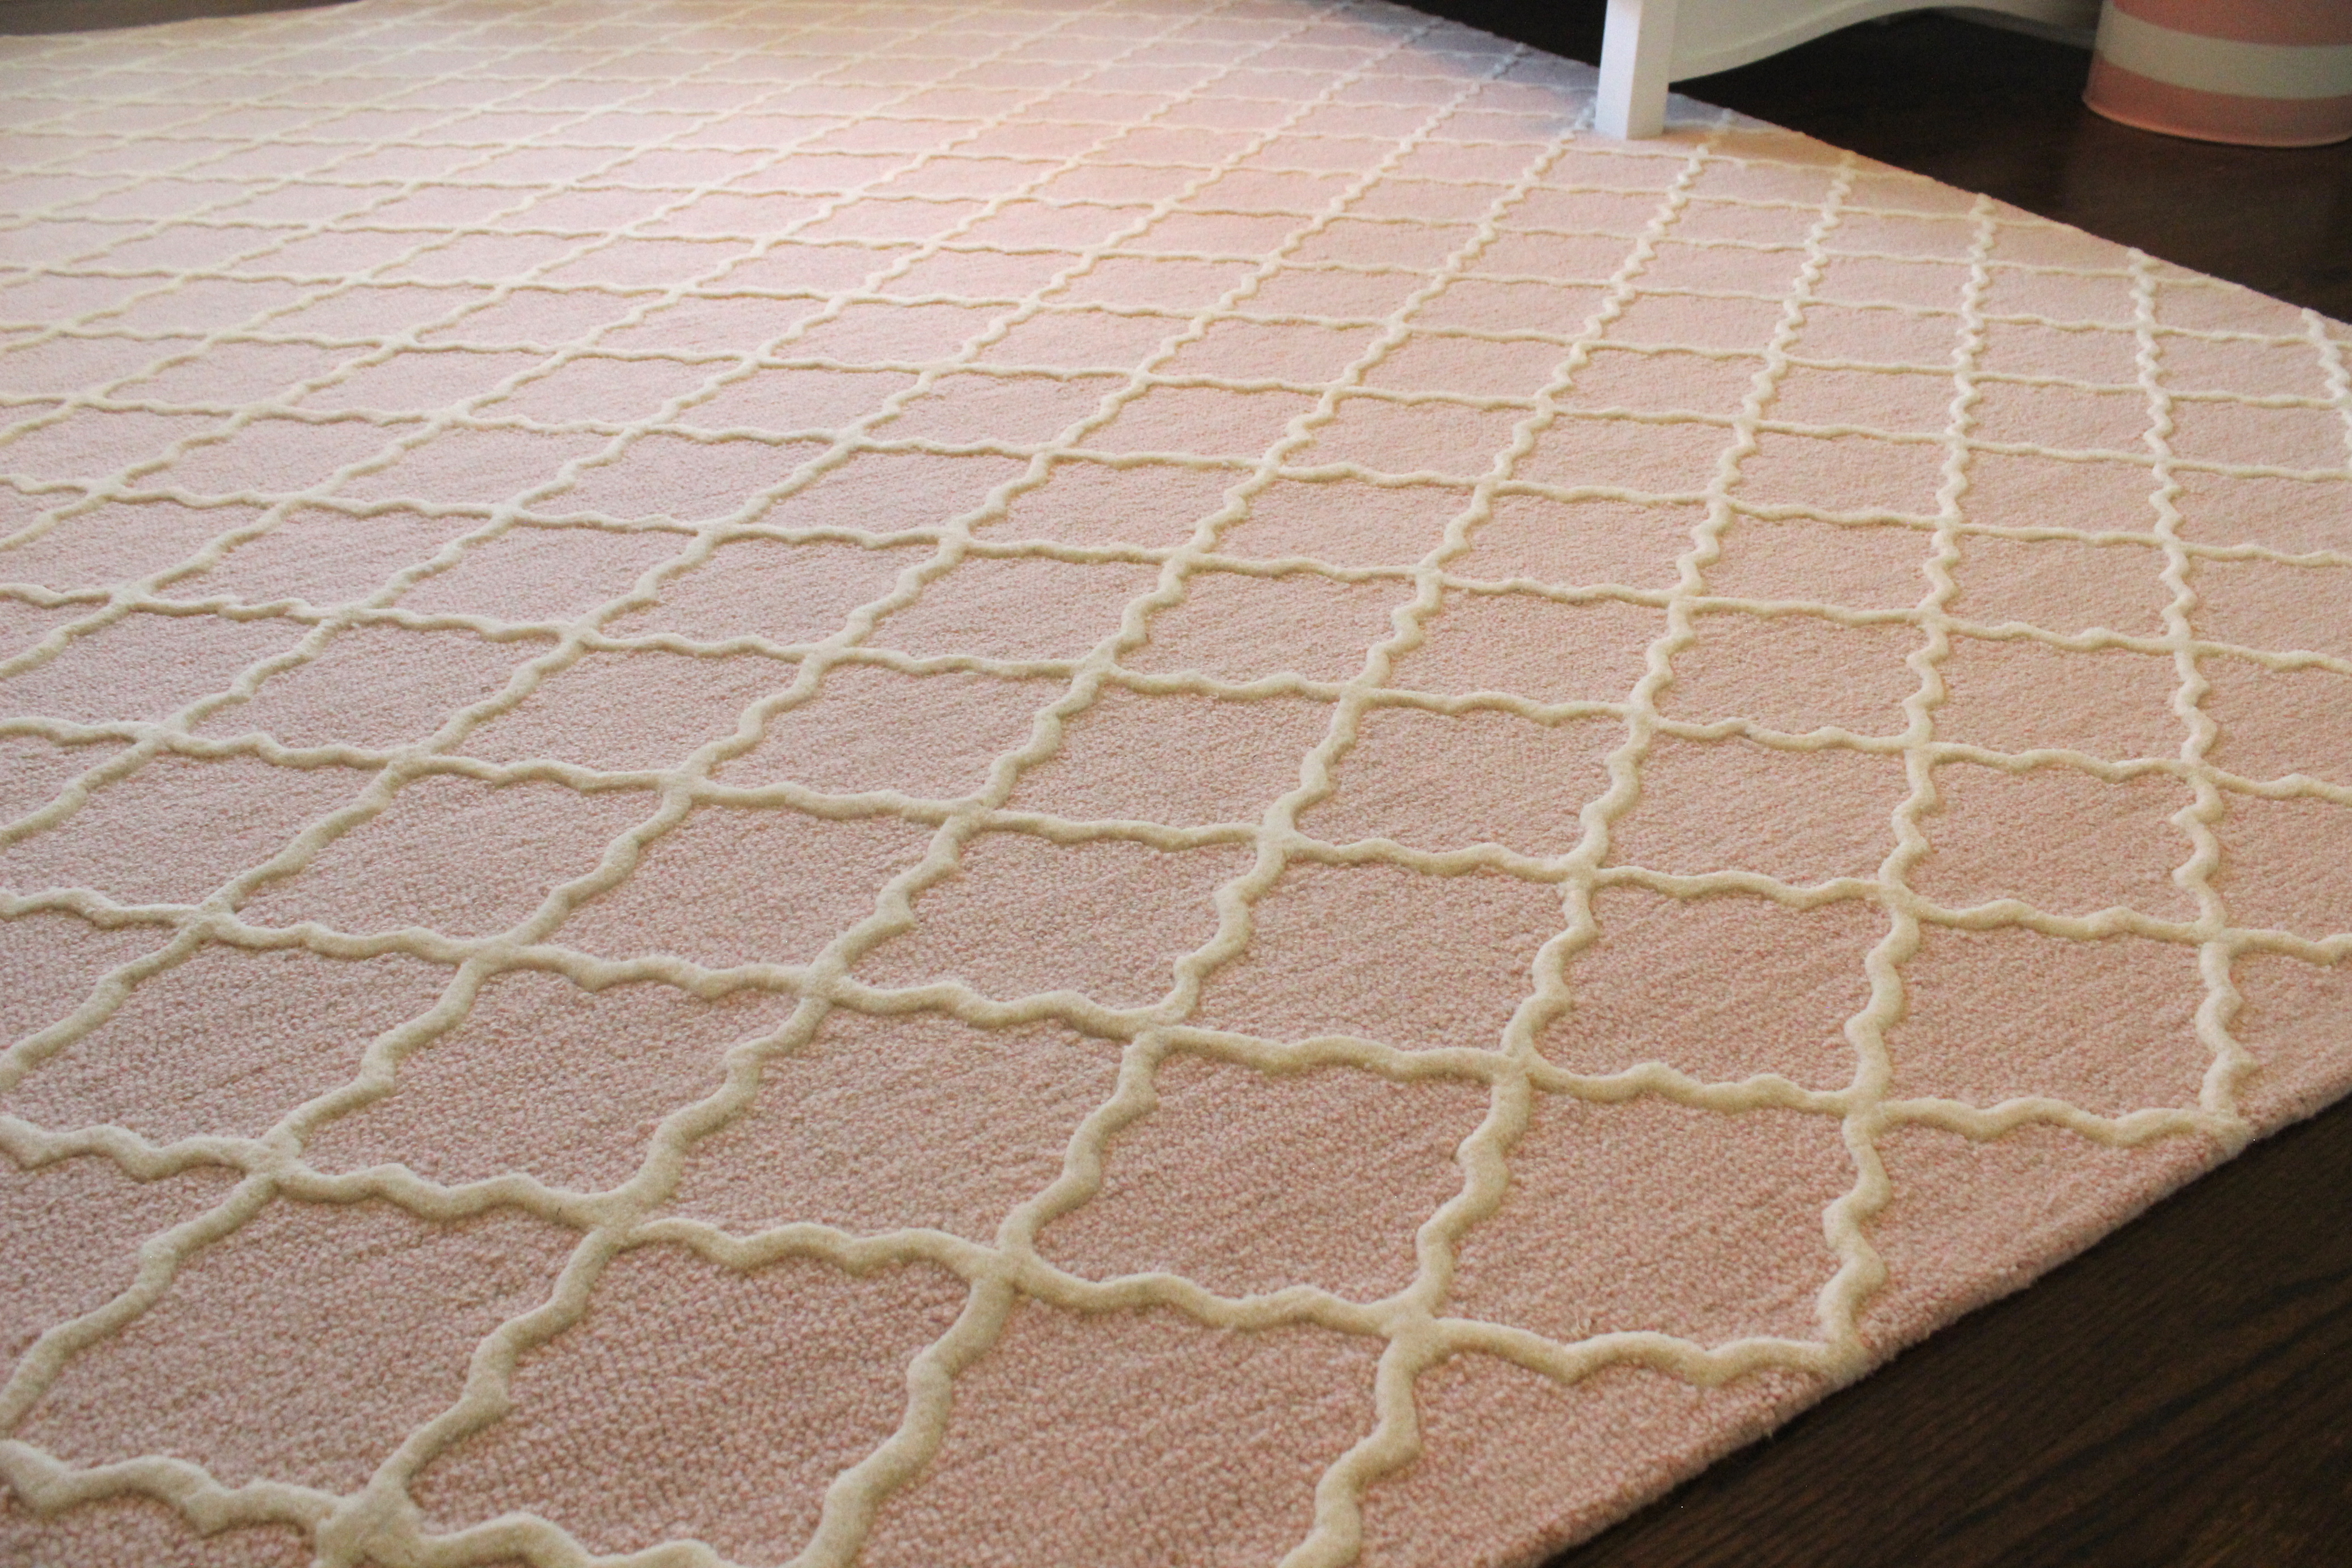 Here Is A Close Up Of The Rug We Got From Pottery Barn It Addison 8 X 10 In Blush I Just Love Combo Blue Walls And Pink